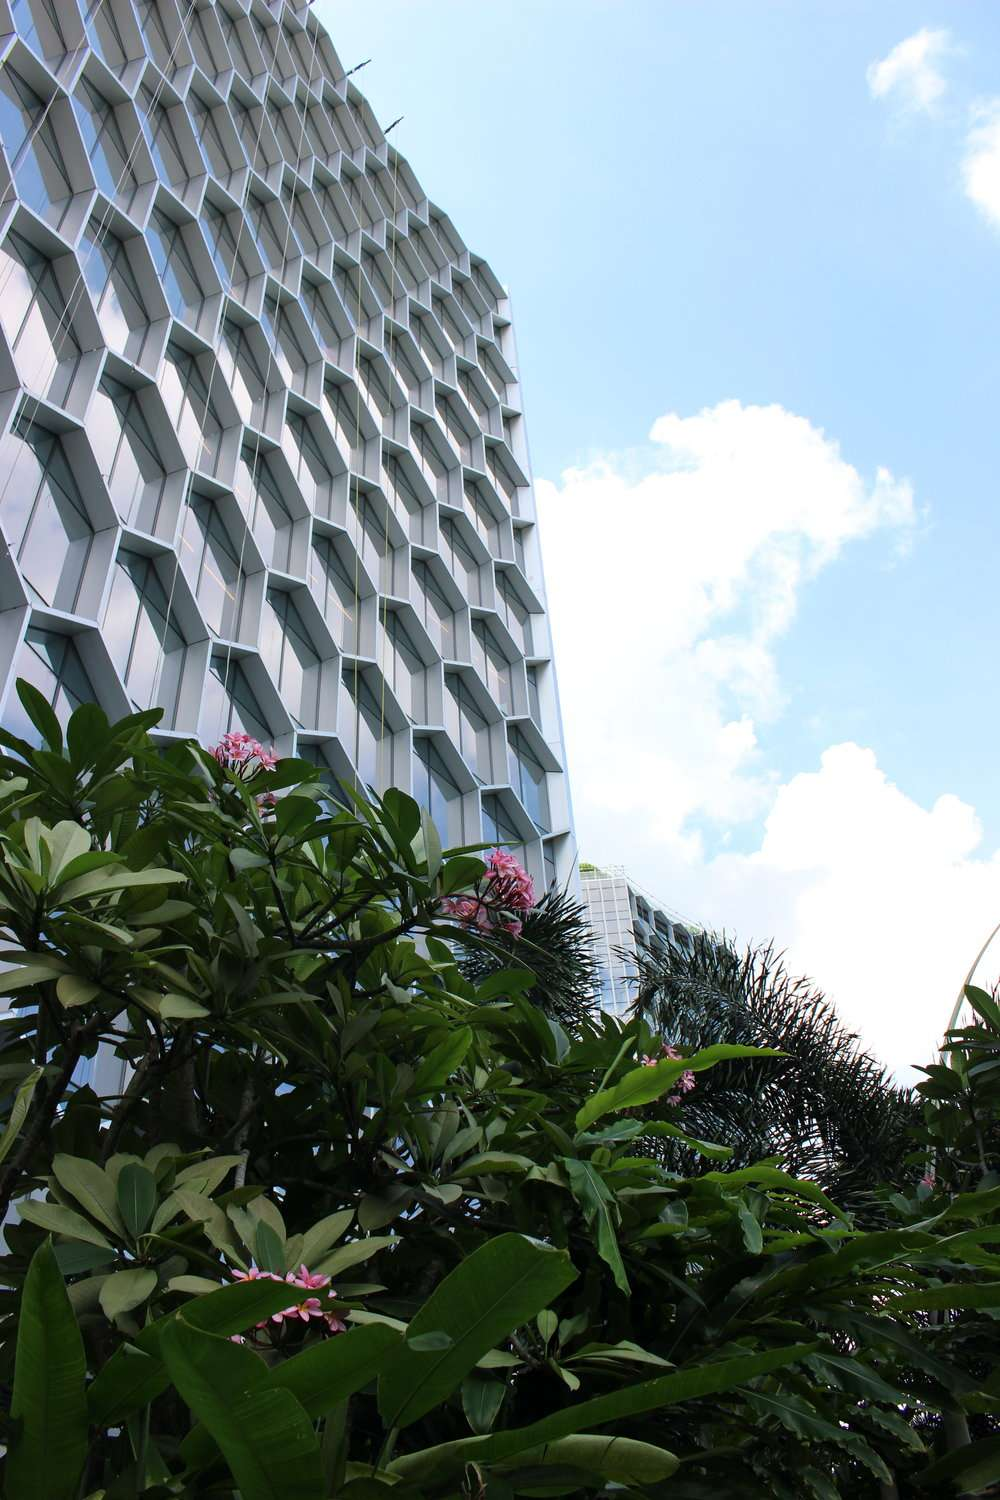 bee hive design building at Andaz Singapore by Hyatt